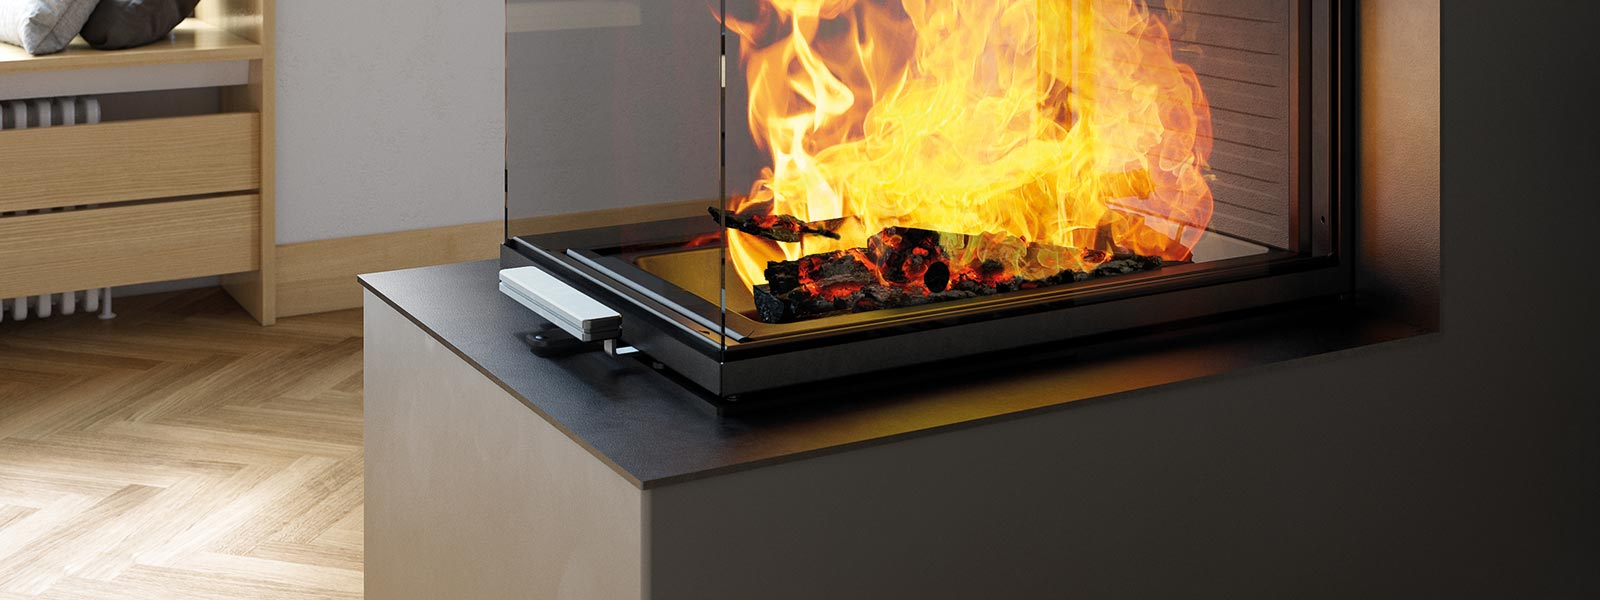 Cheminées Modulaires Cheminée Visio 3 1 St Fireplace Insert Impresses With An